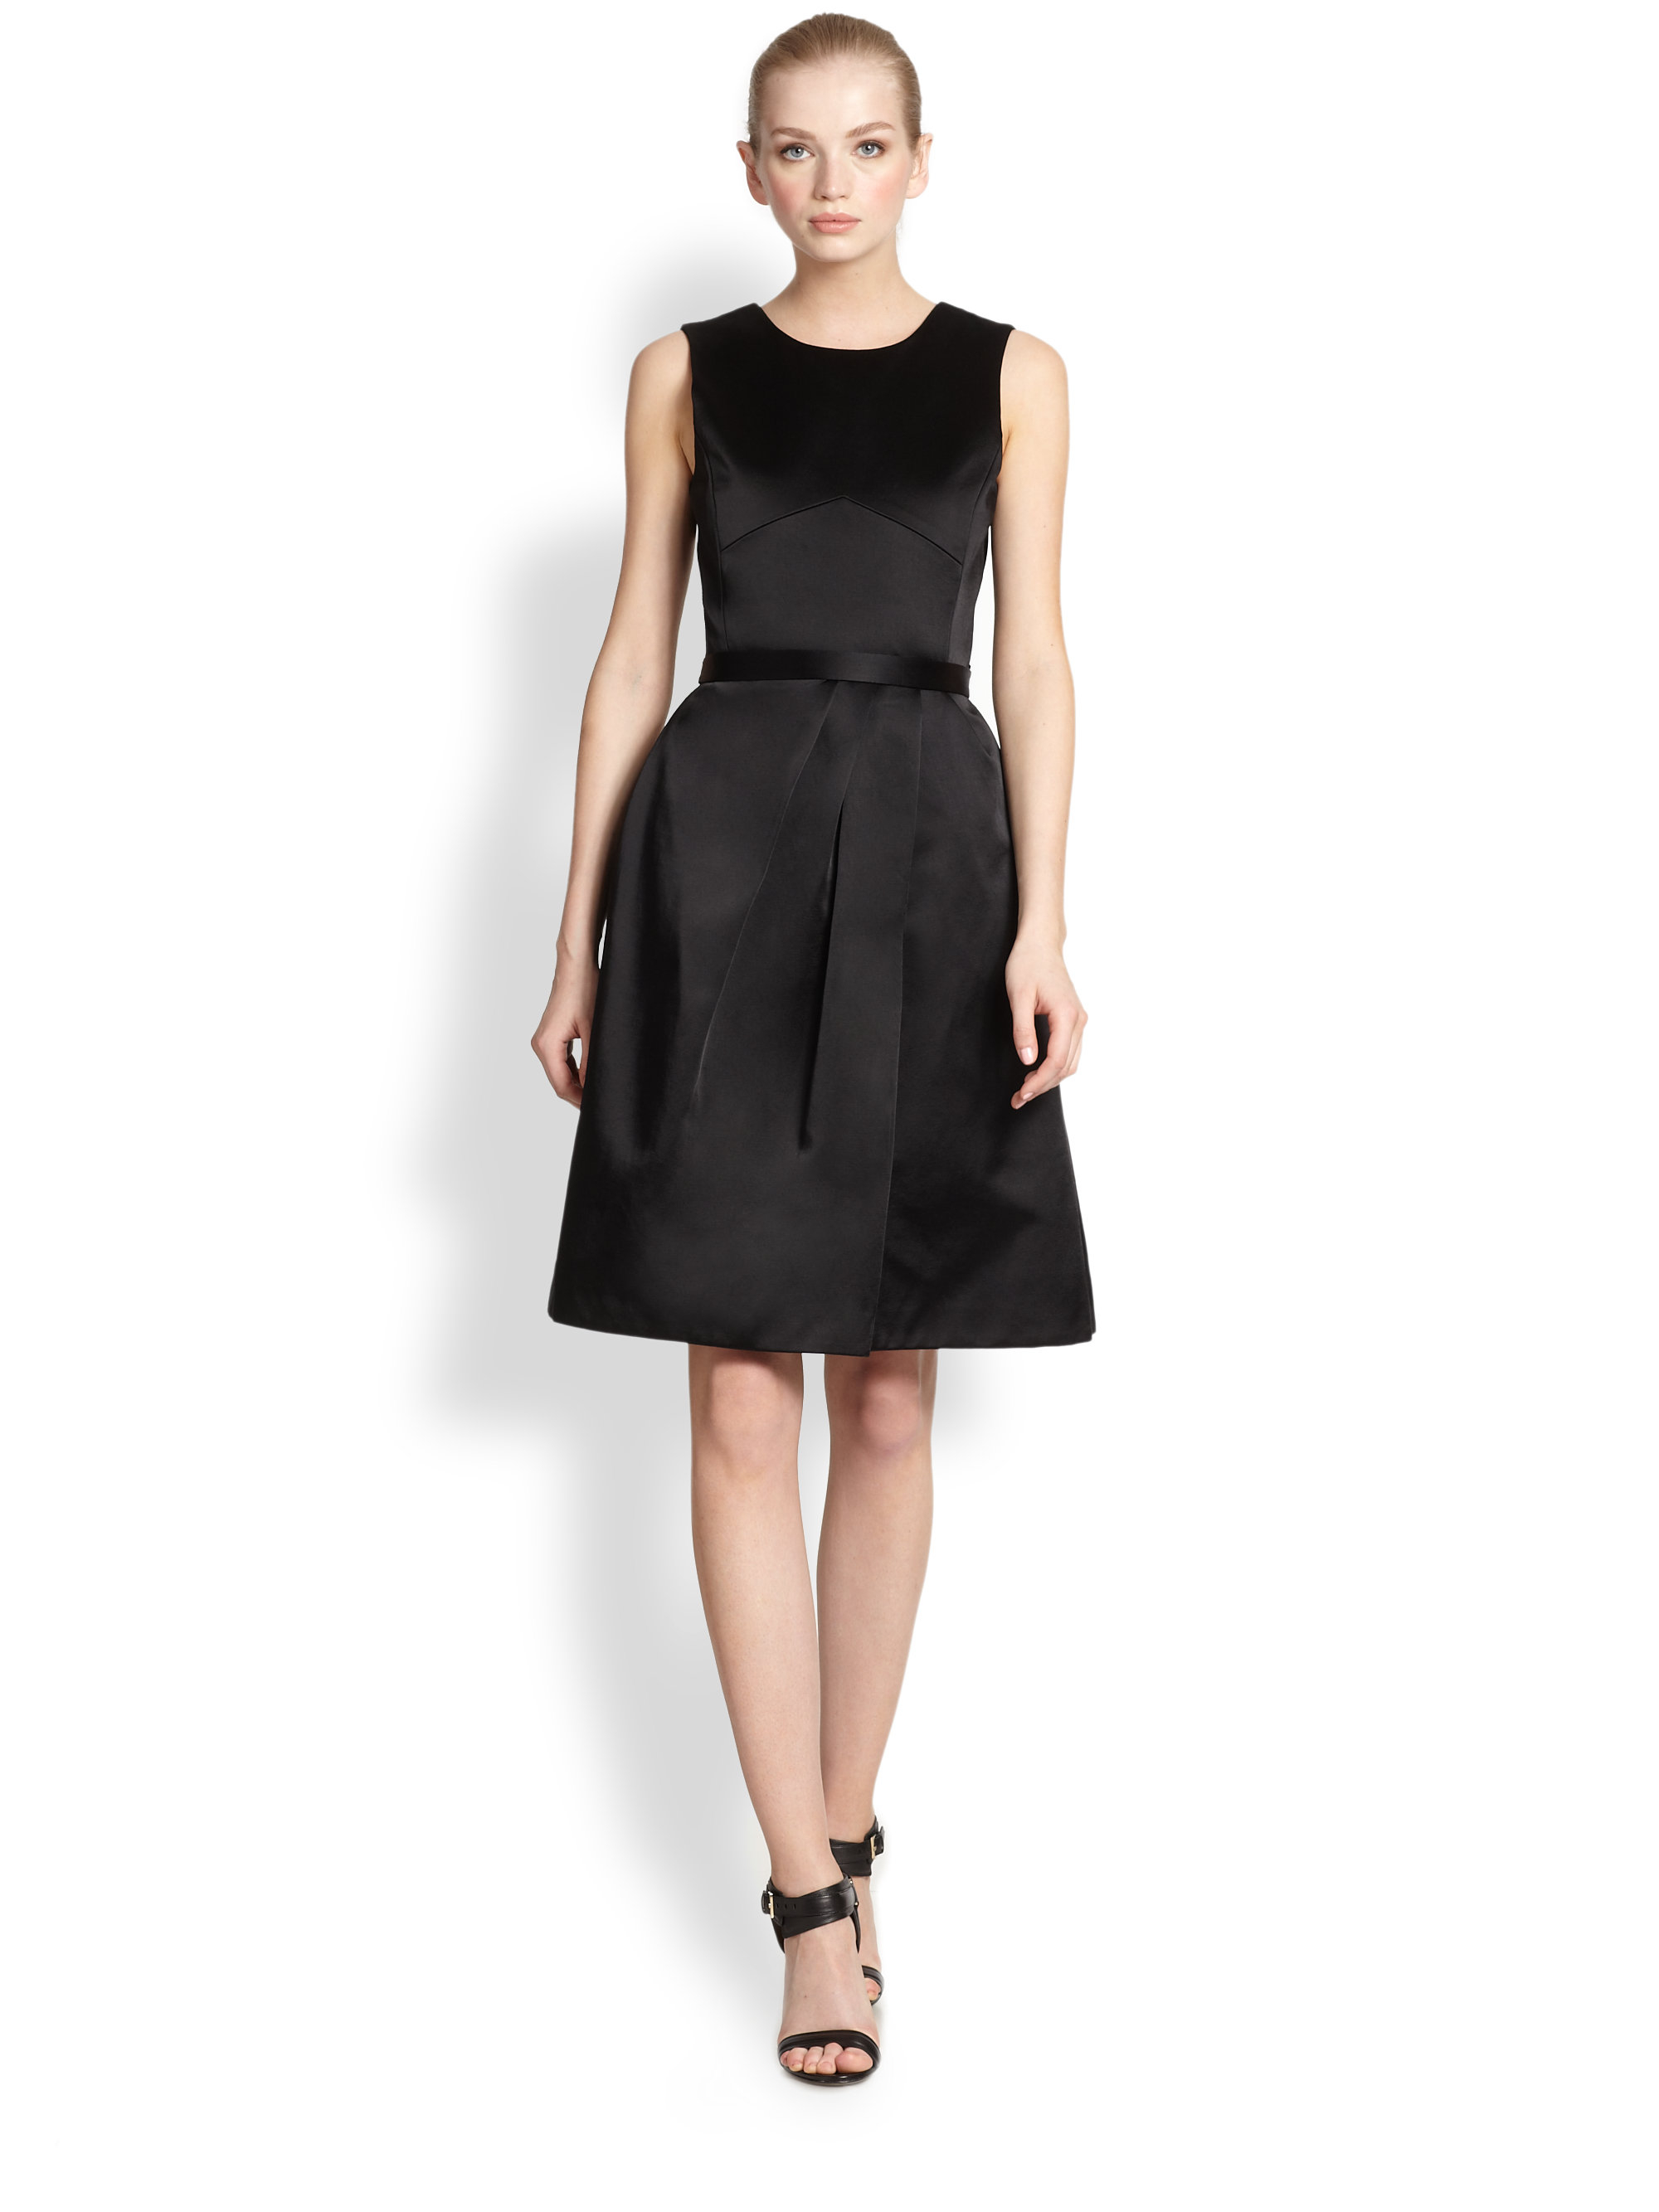 Jason wu Satin Dress in Black | Lyst